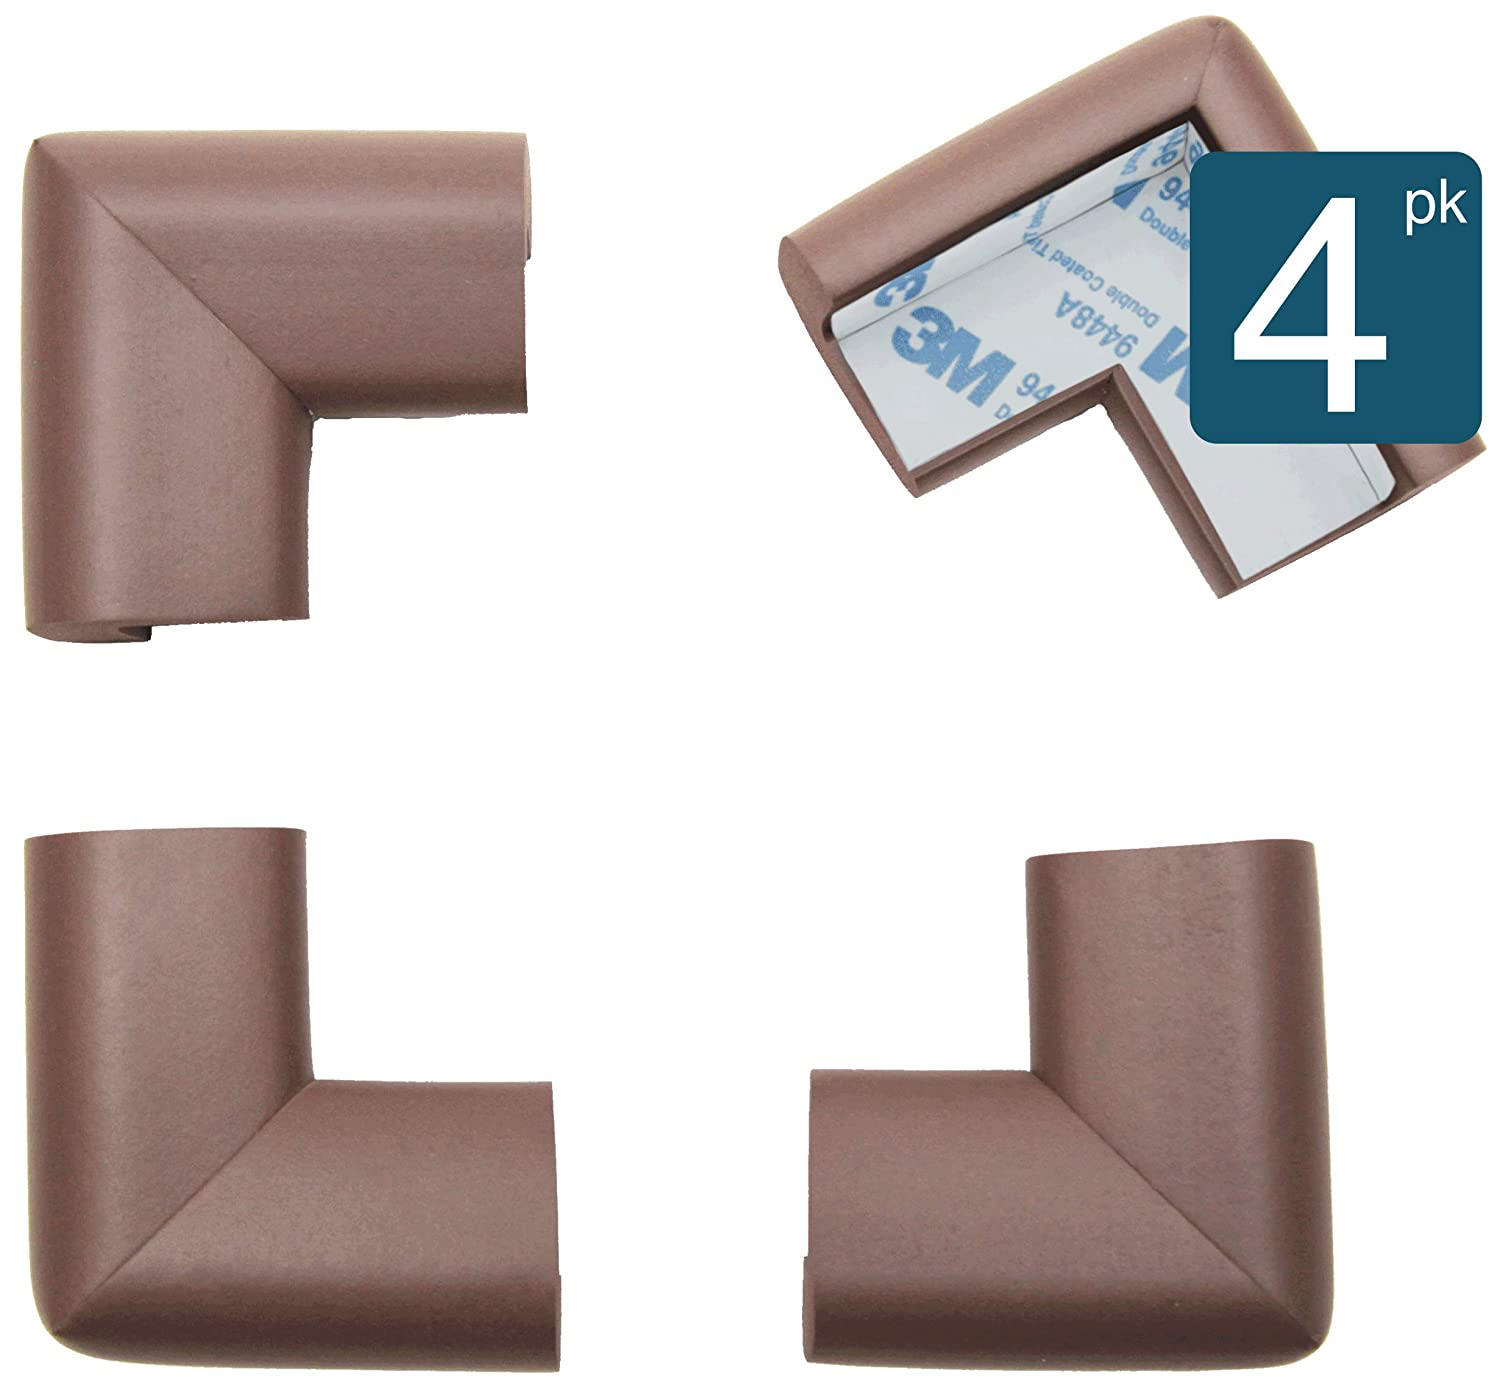 B00EBZCA1M Roving Cove Corner Protector | Soft Baby Proofing Table Corner Bumper Guard | Child Safety Furniture Fireplace Corner Edge Guards | Soft Foam | Safe Corner Cushion | Pre-Taped | 4-pcs Coffee (Brown) 71WR7T-IttL